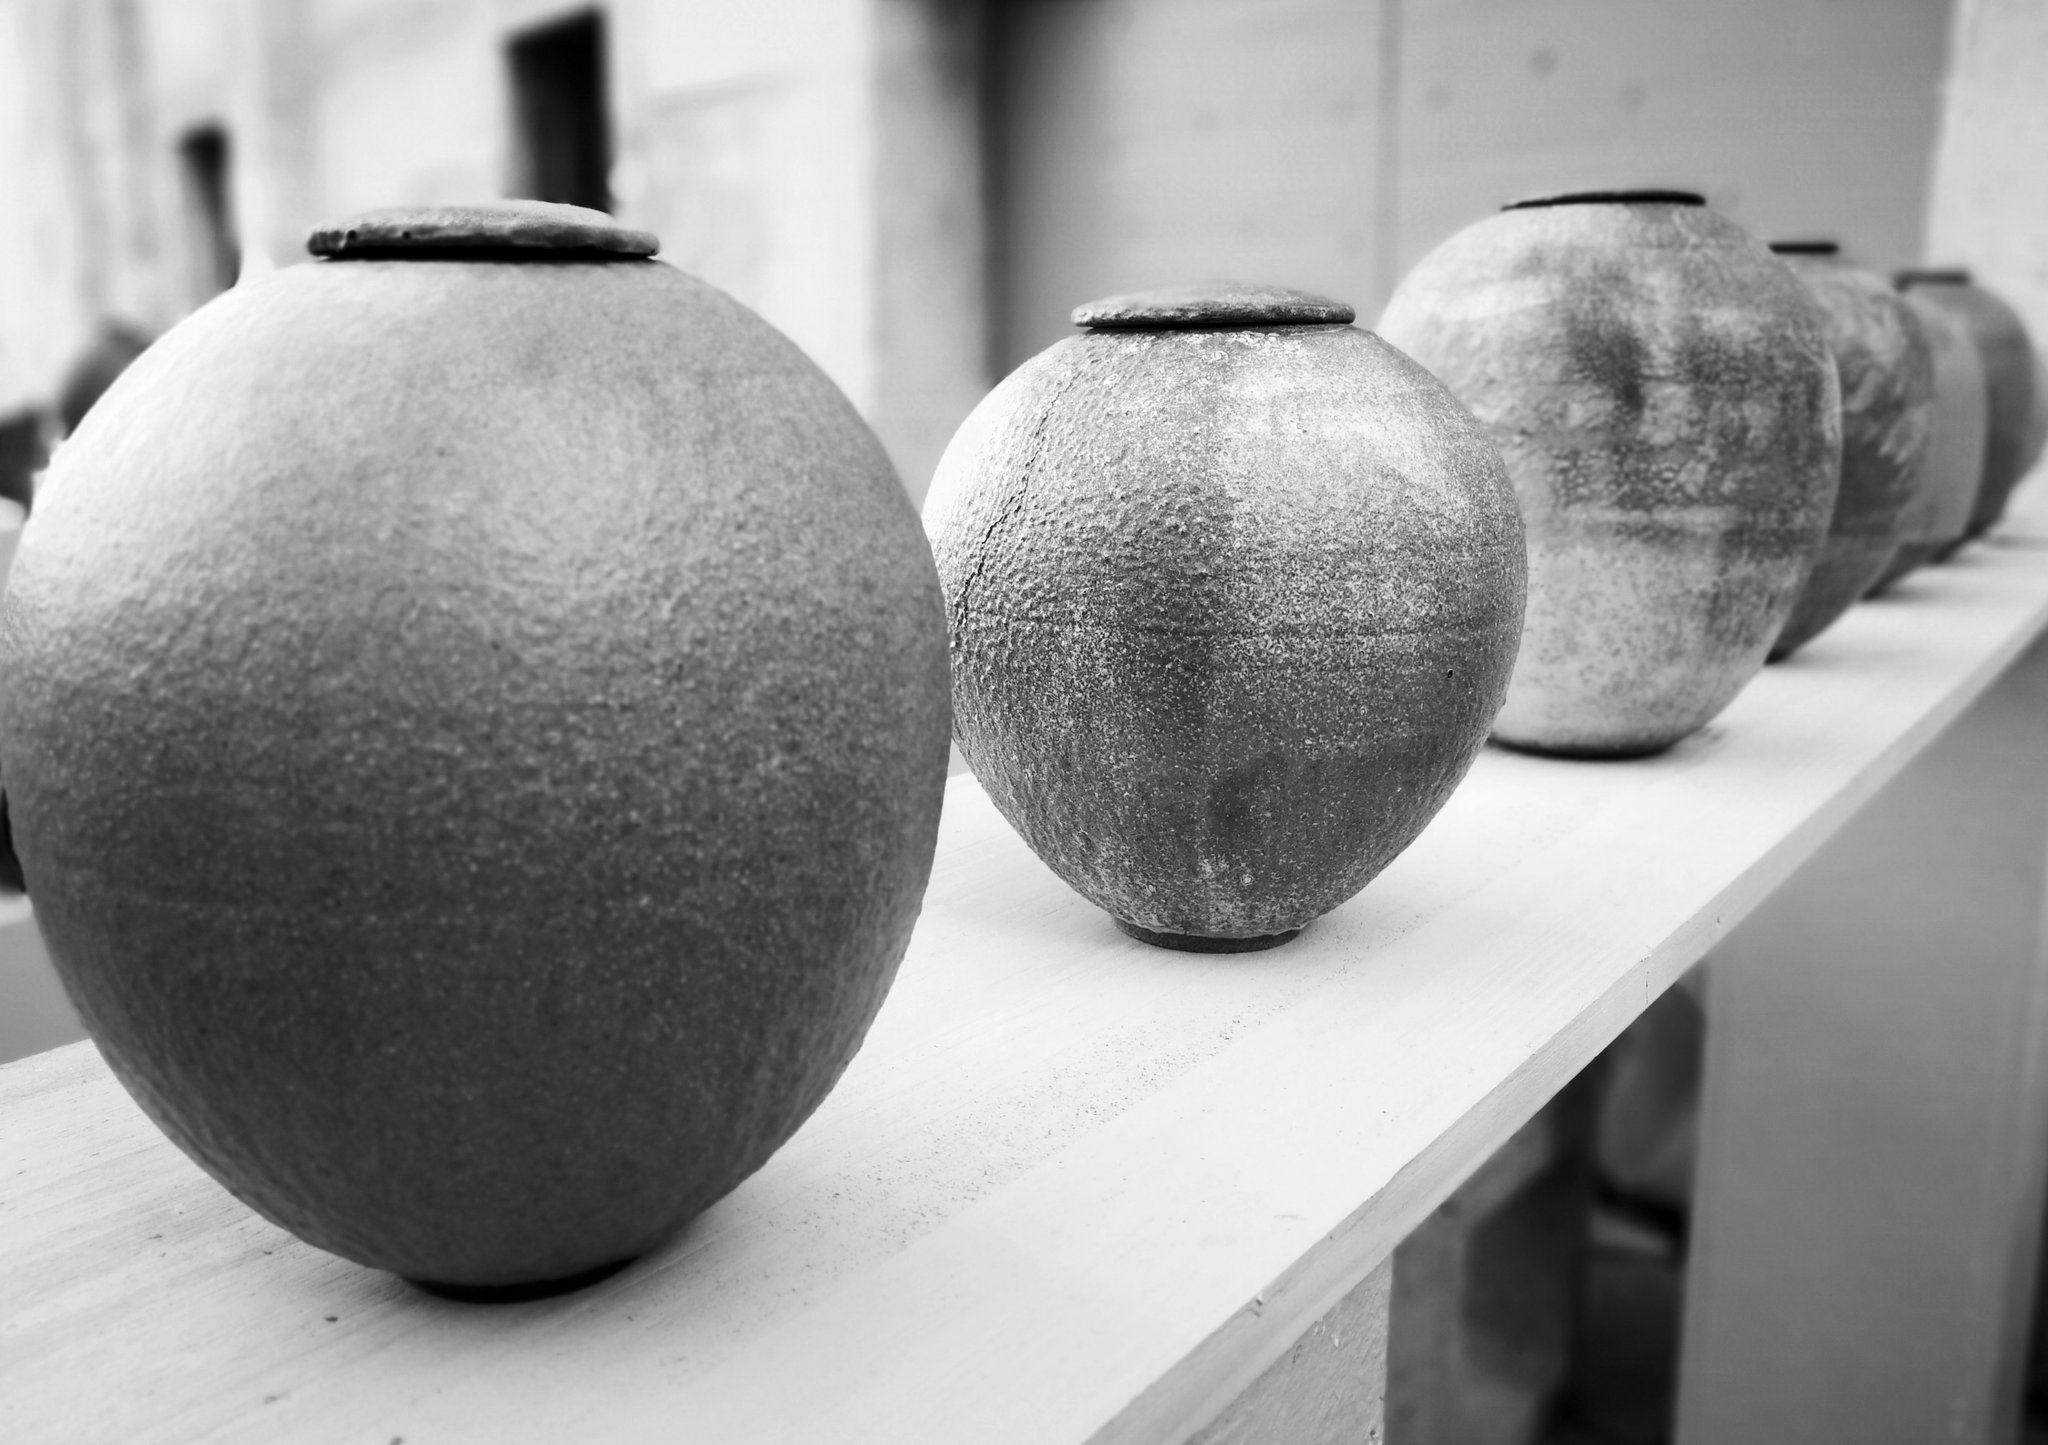 #pottery  #1P1W #1picture1word 📸 #activeemotion 👁️ #battlepicture 🌎 🌍  Every picture tells a story! #Imagine #Photo 📷 #weare1forall #France The less you say, the more people remember 😀 #blackandwhitephotography https://t.co/BFWlAYvJrP